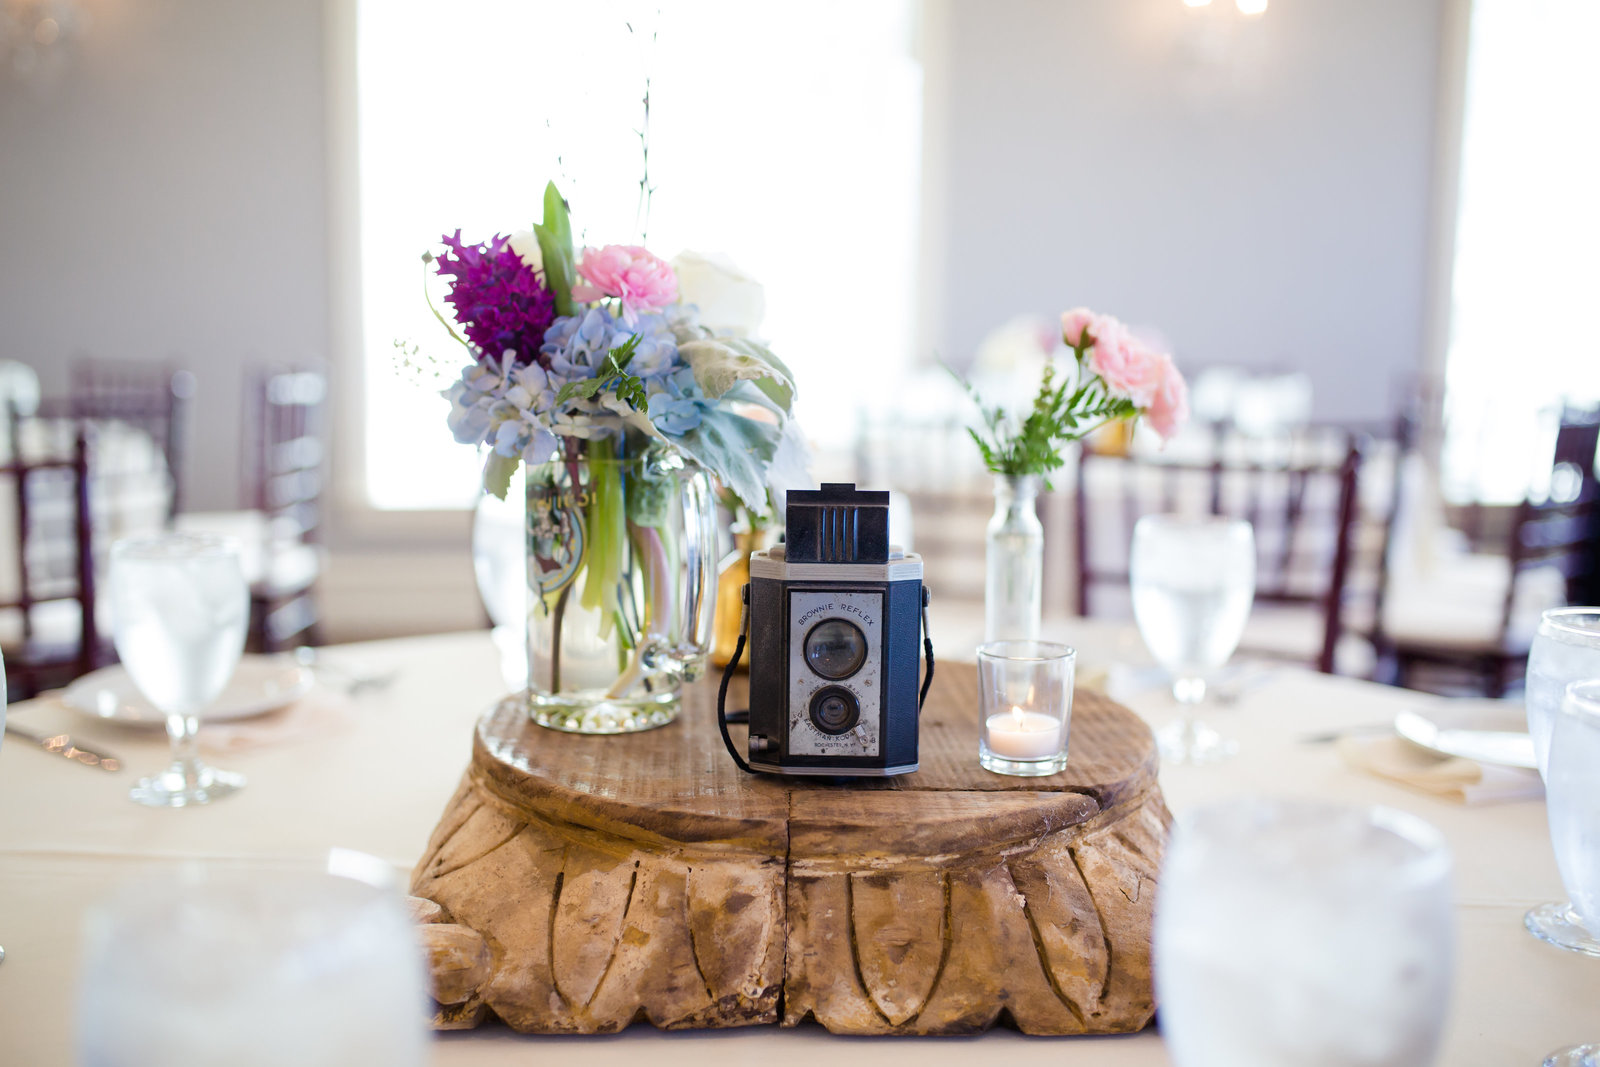 Centerpiece at reception by Brittany Barclay Photography